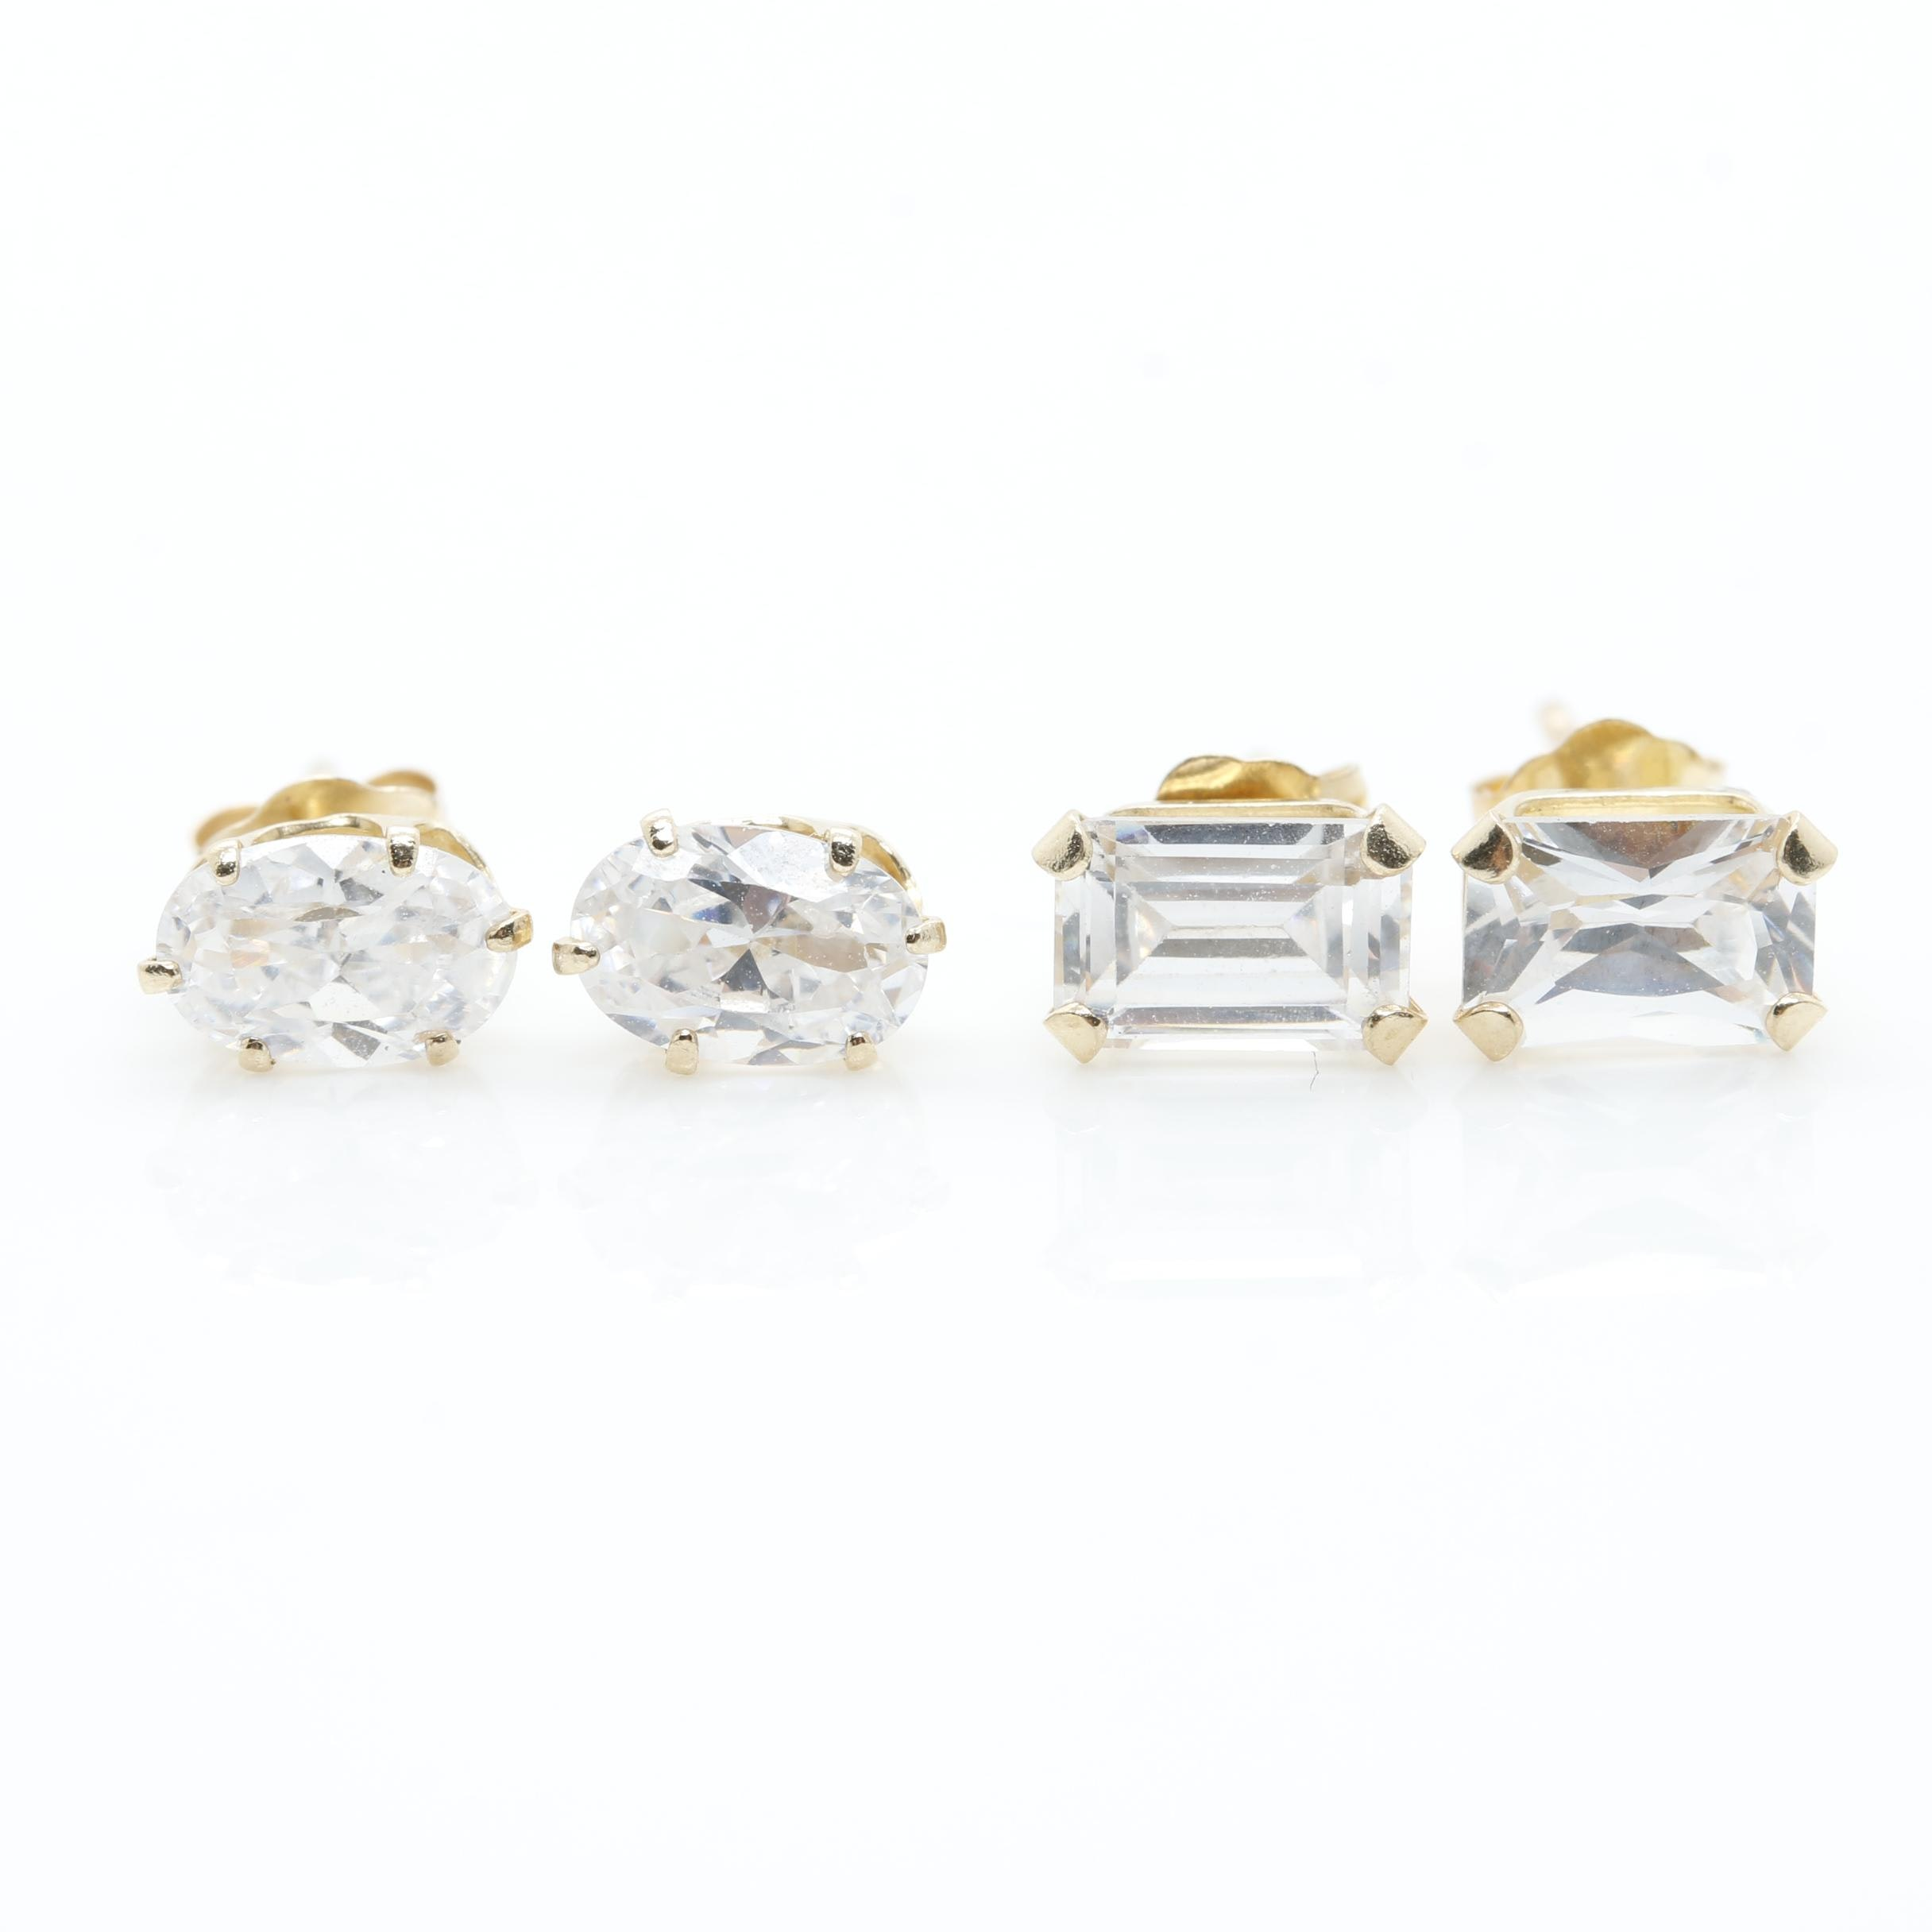 Pair of 14K Yellow Gold Cubic Zirconia Stud Earrings